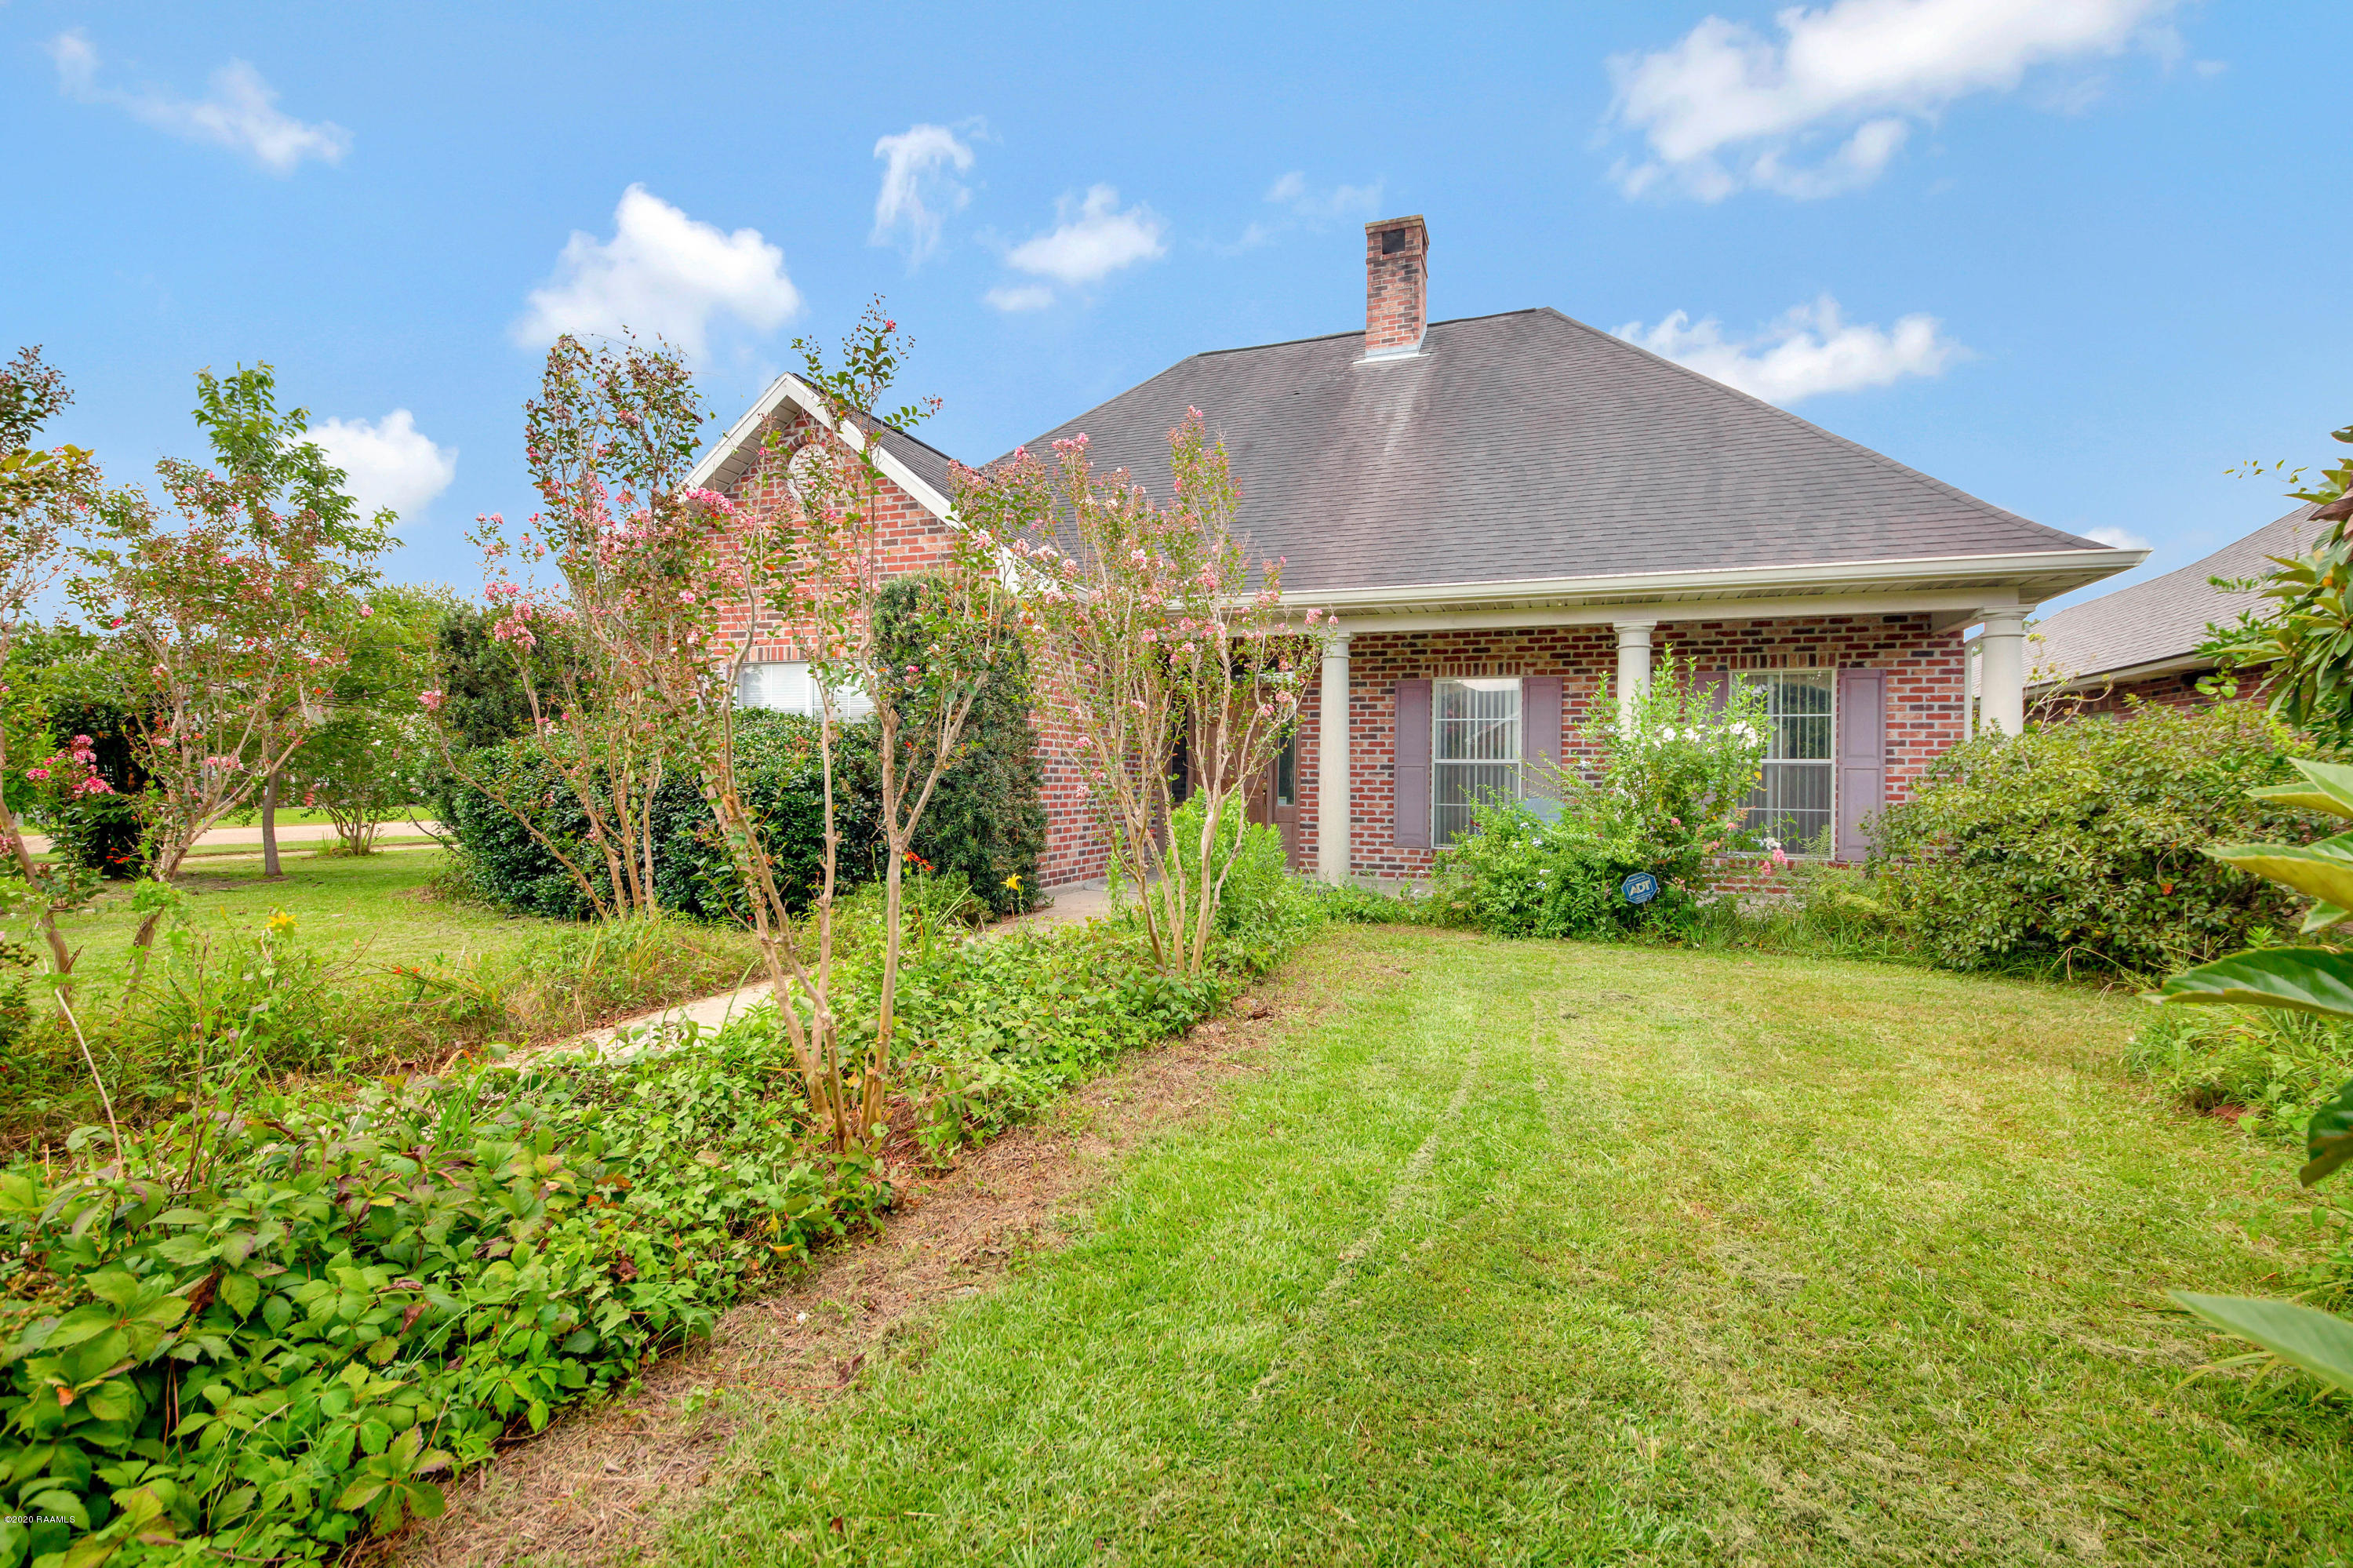 101 Nickland Drive, Scott, LA 70583 Photo #2